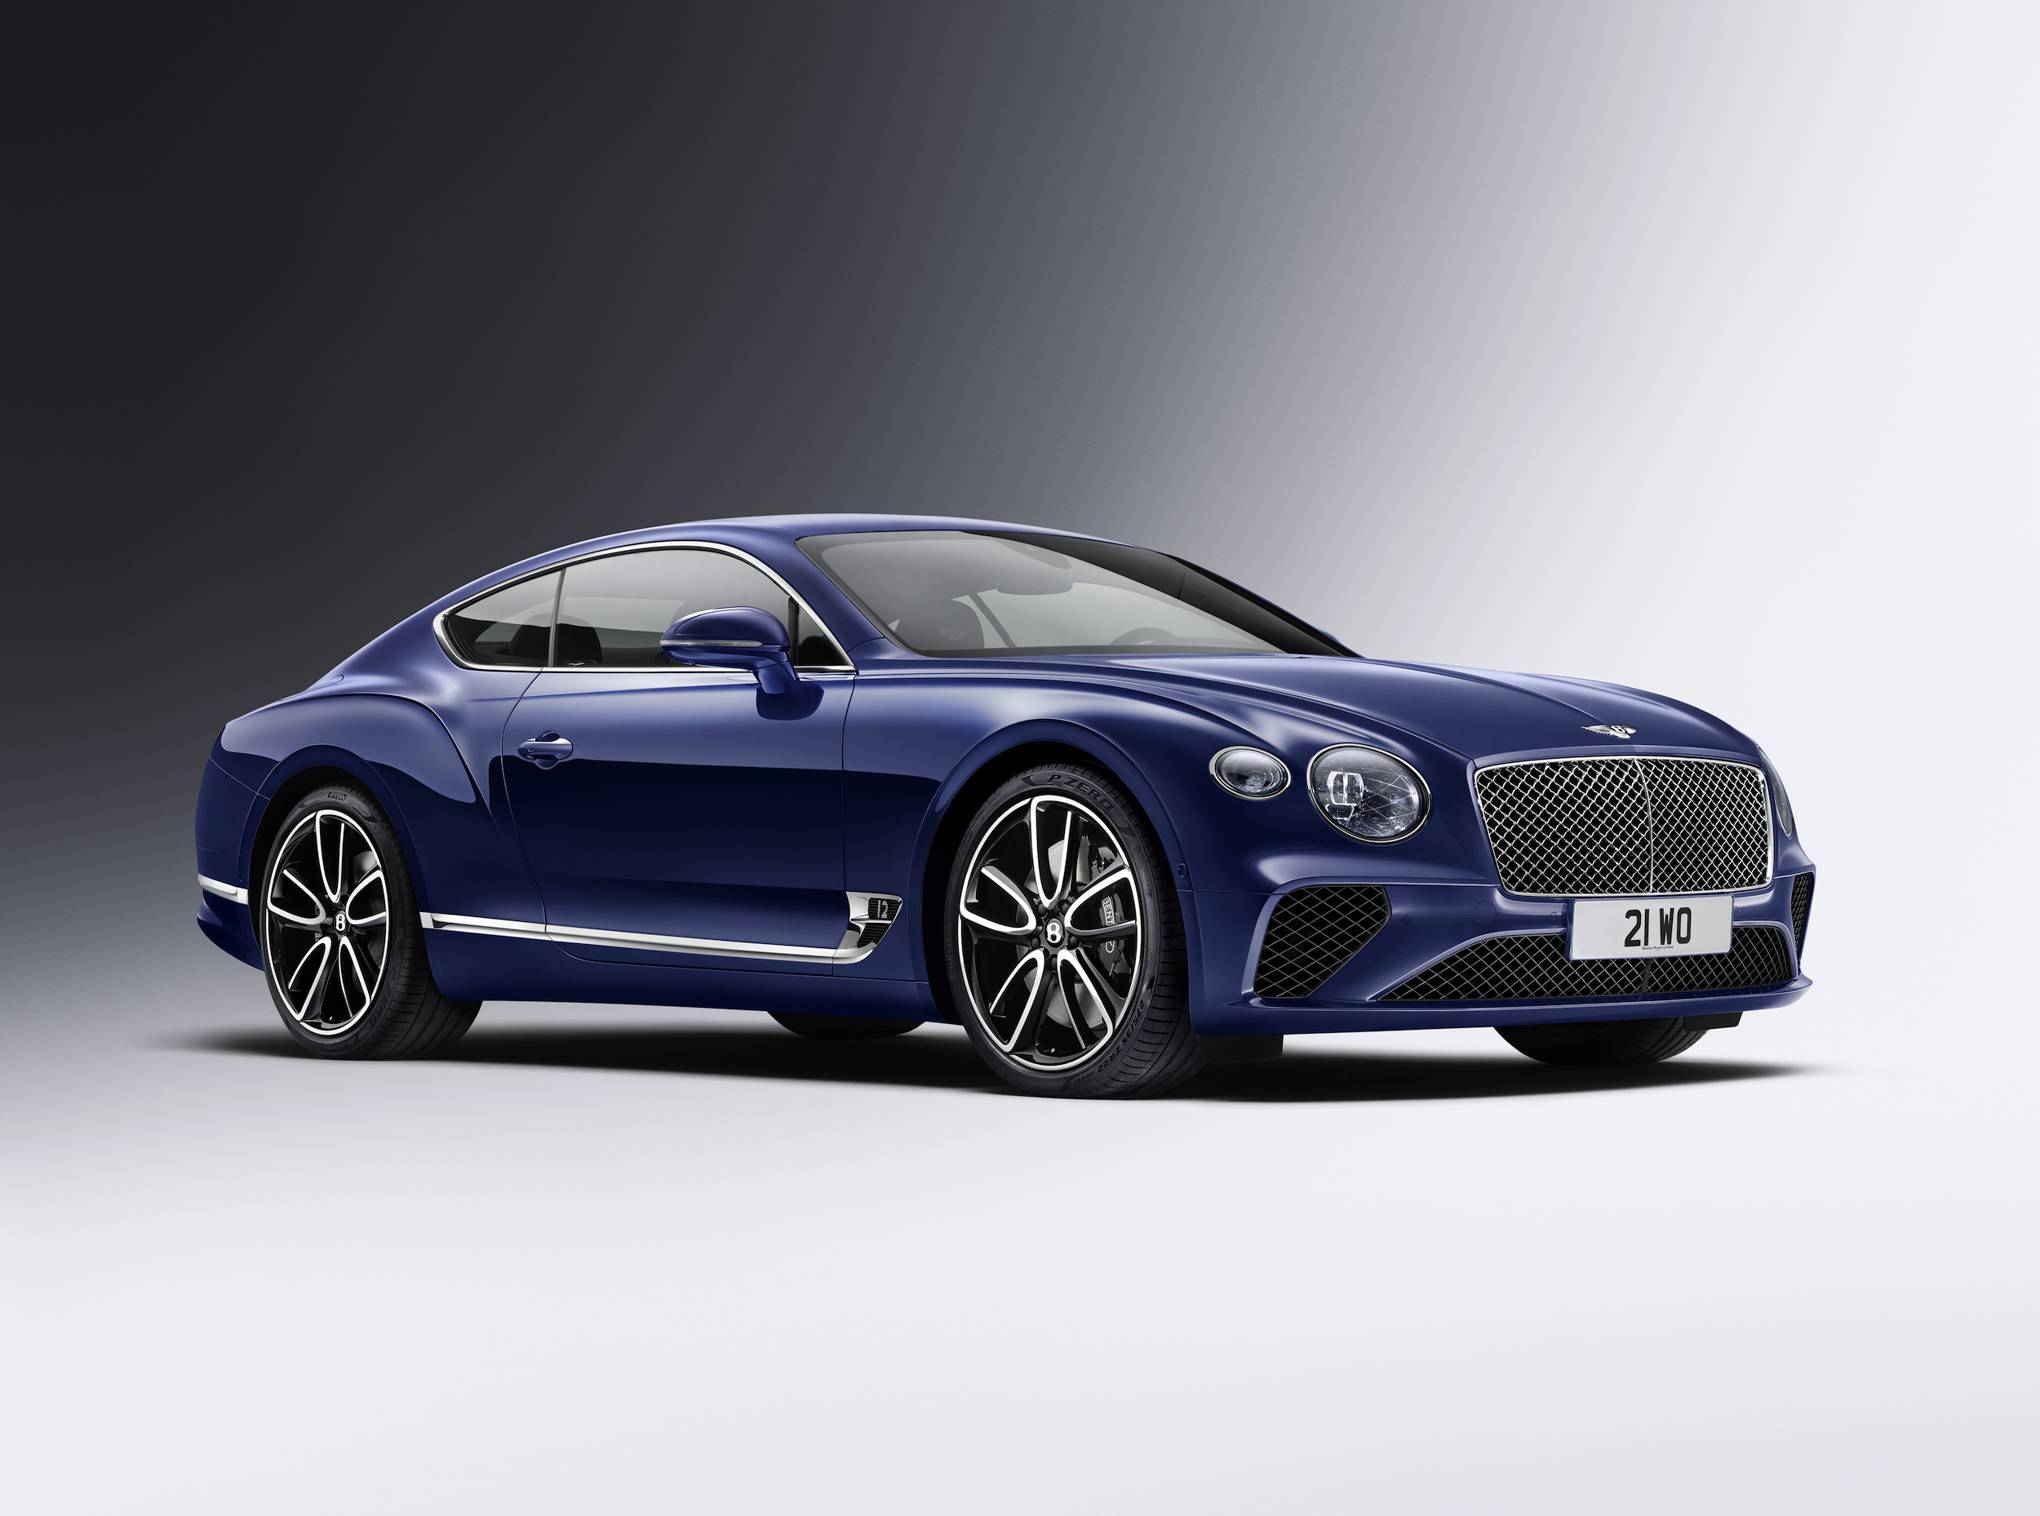 Bentley Continental GT: new model is straight out of James Bond | WIRED UK